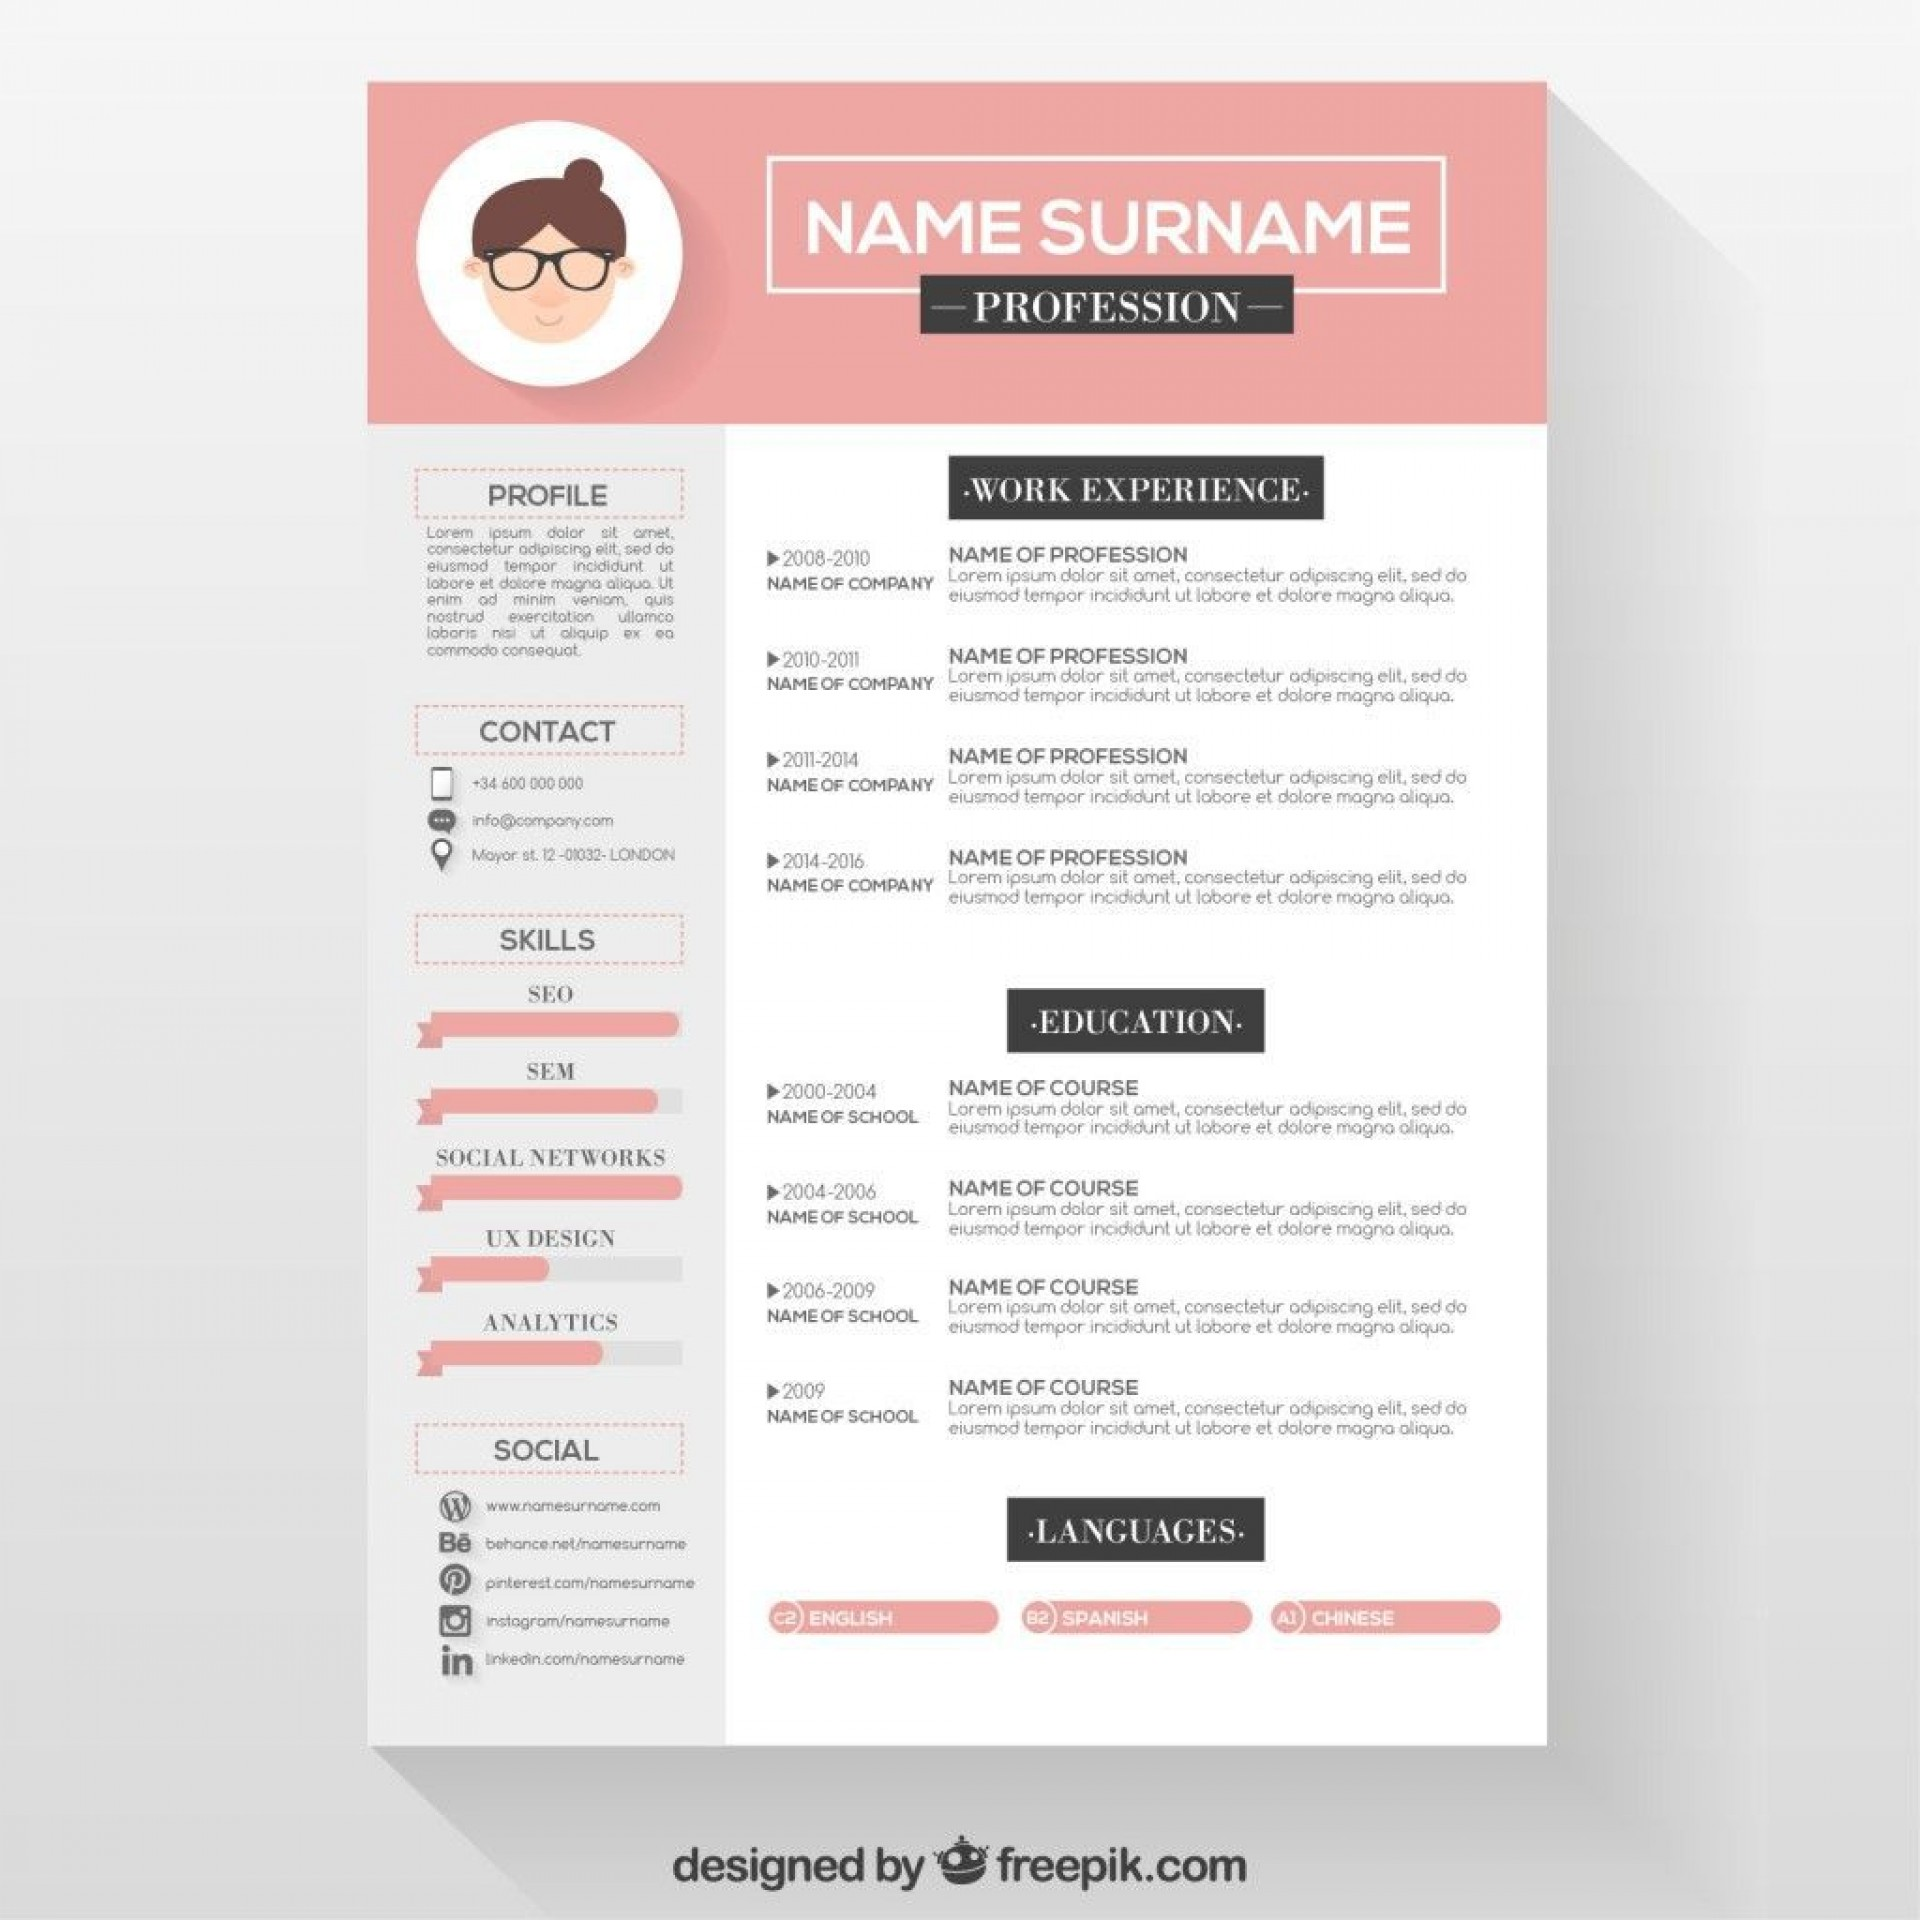 001 Stupendou Photoshop Cv Template Free Download Inspiration  Creative Resume Psd Adobe1920